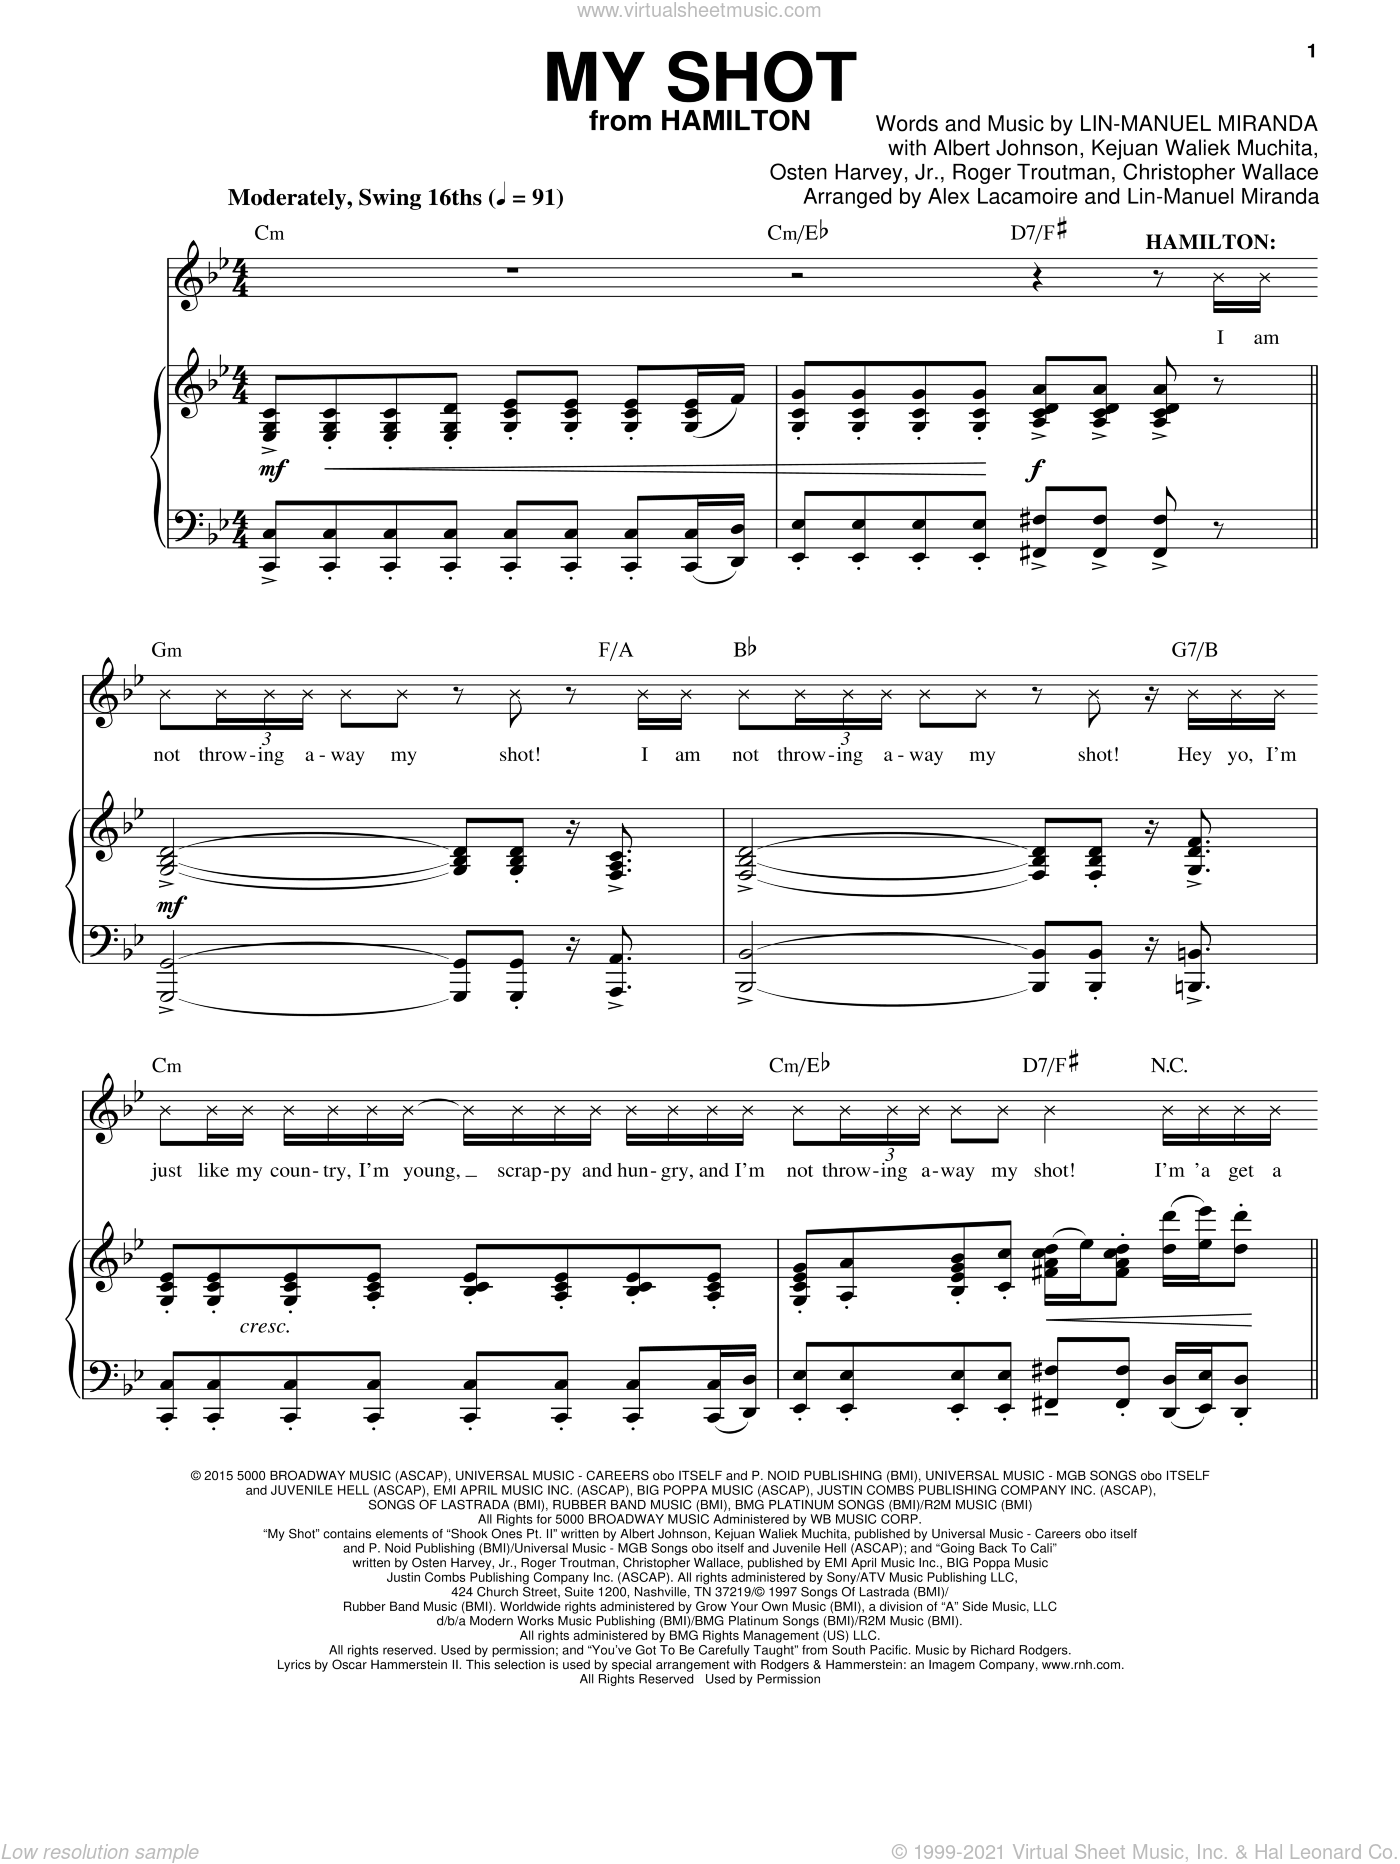 My Shot (from Hamilton) sheet music for voice and piano by Lin-Manuel Miranda, Alex Lacamoire, Albert Johnson, Christopher Wallace, Kejuan Waliek Muchita, Osten Harvey, Jr. and Roger Troutman, intermediate skill level